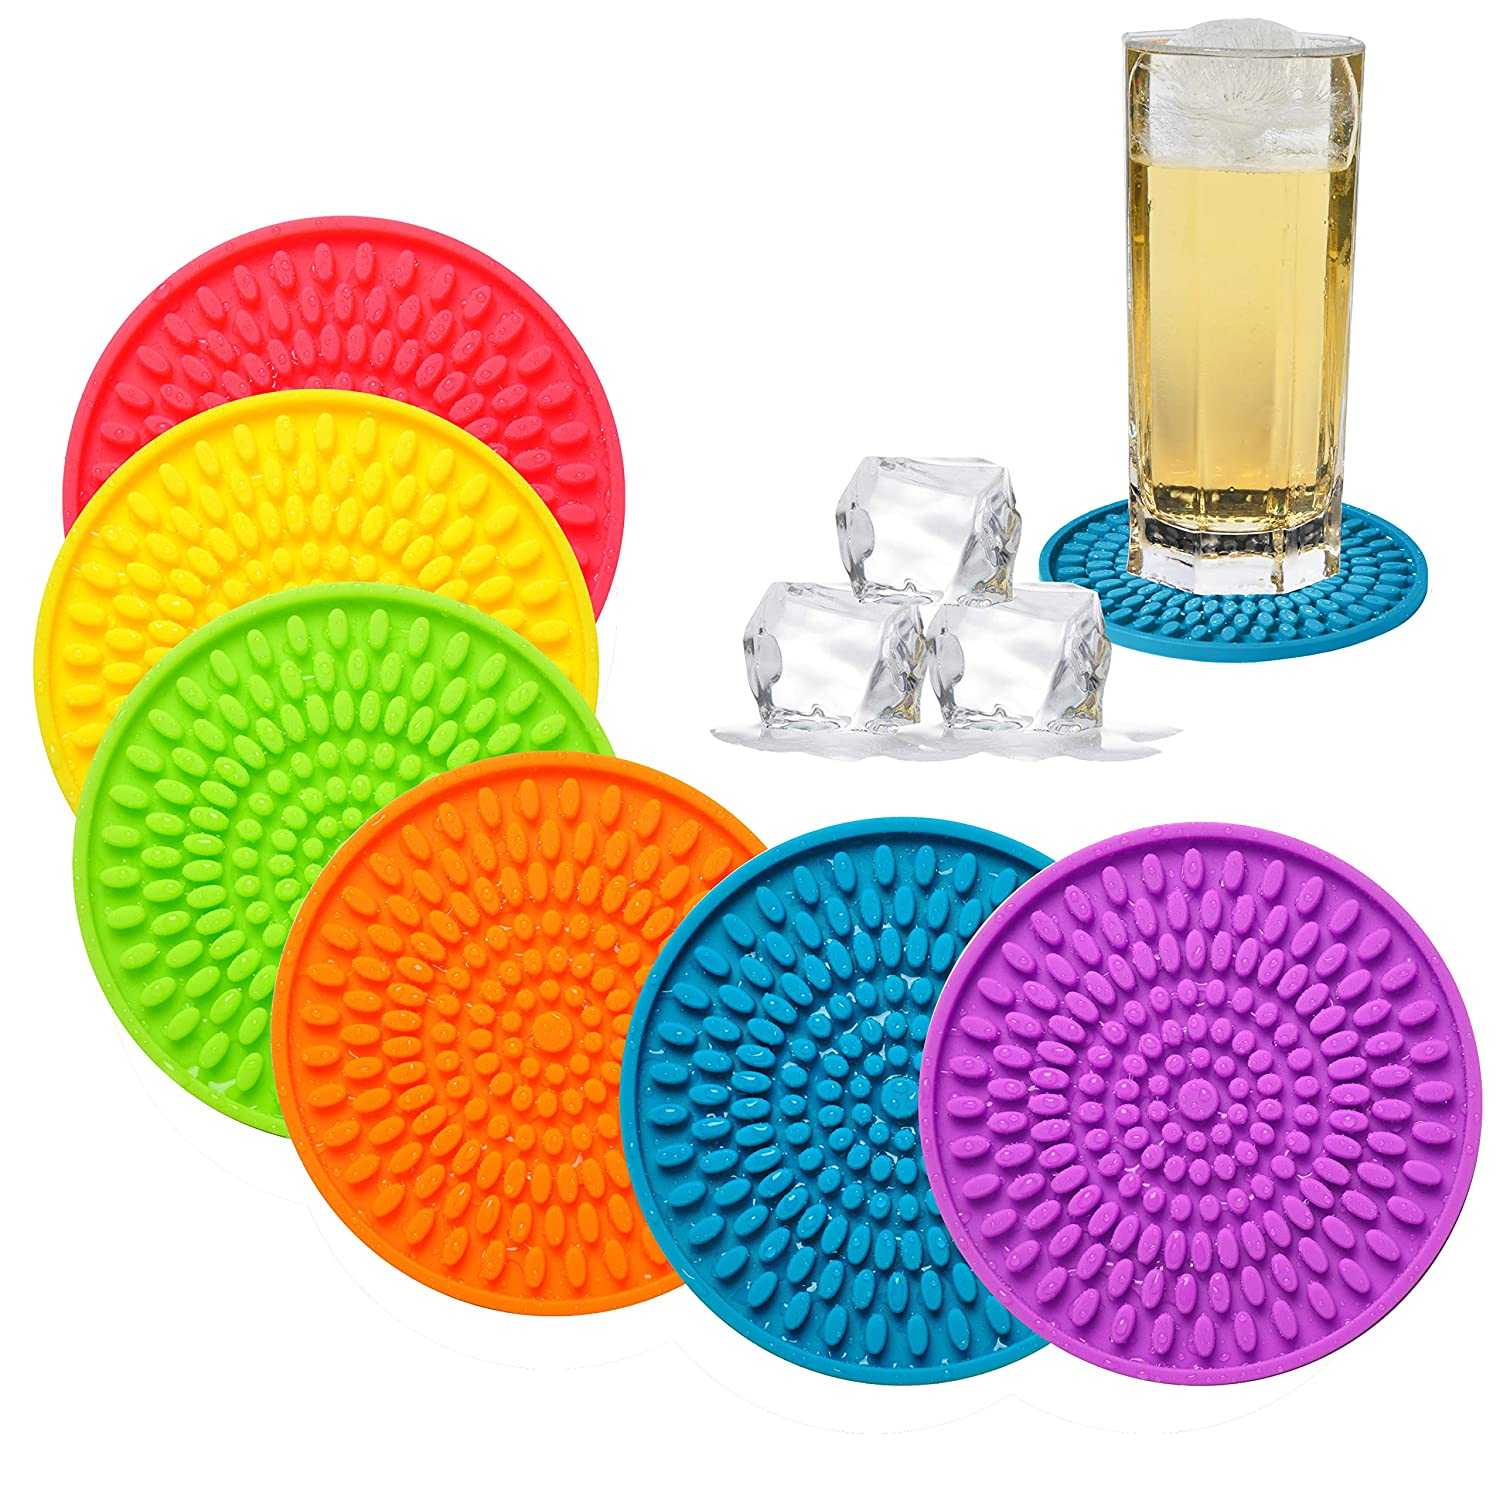 Colorful Coasters for Drinks Absorbent, Rubber Drink Coaster Set, Silicone Rainbow Coasters for Coffee Table Desk, 4.3 Inch Oval Shape Deep Tray Pot Holder Trivet (Set of 6) Kindga